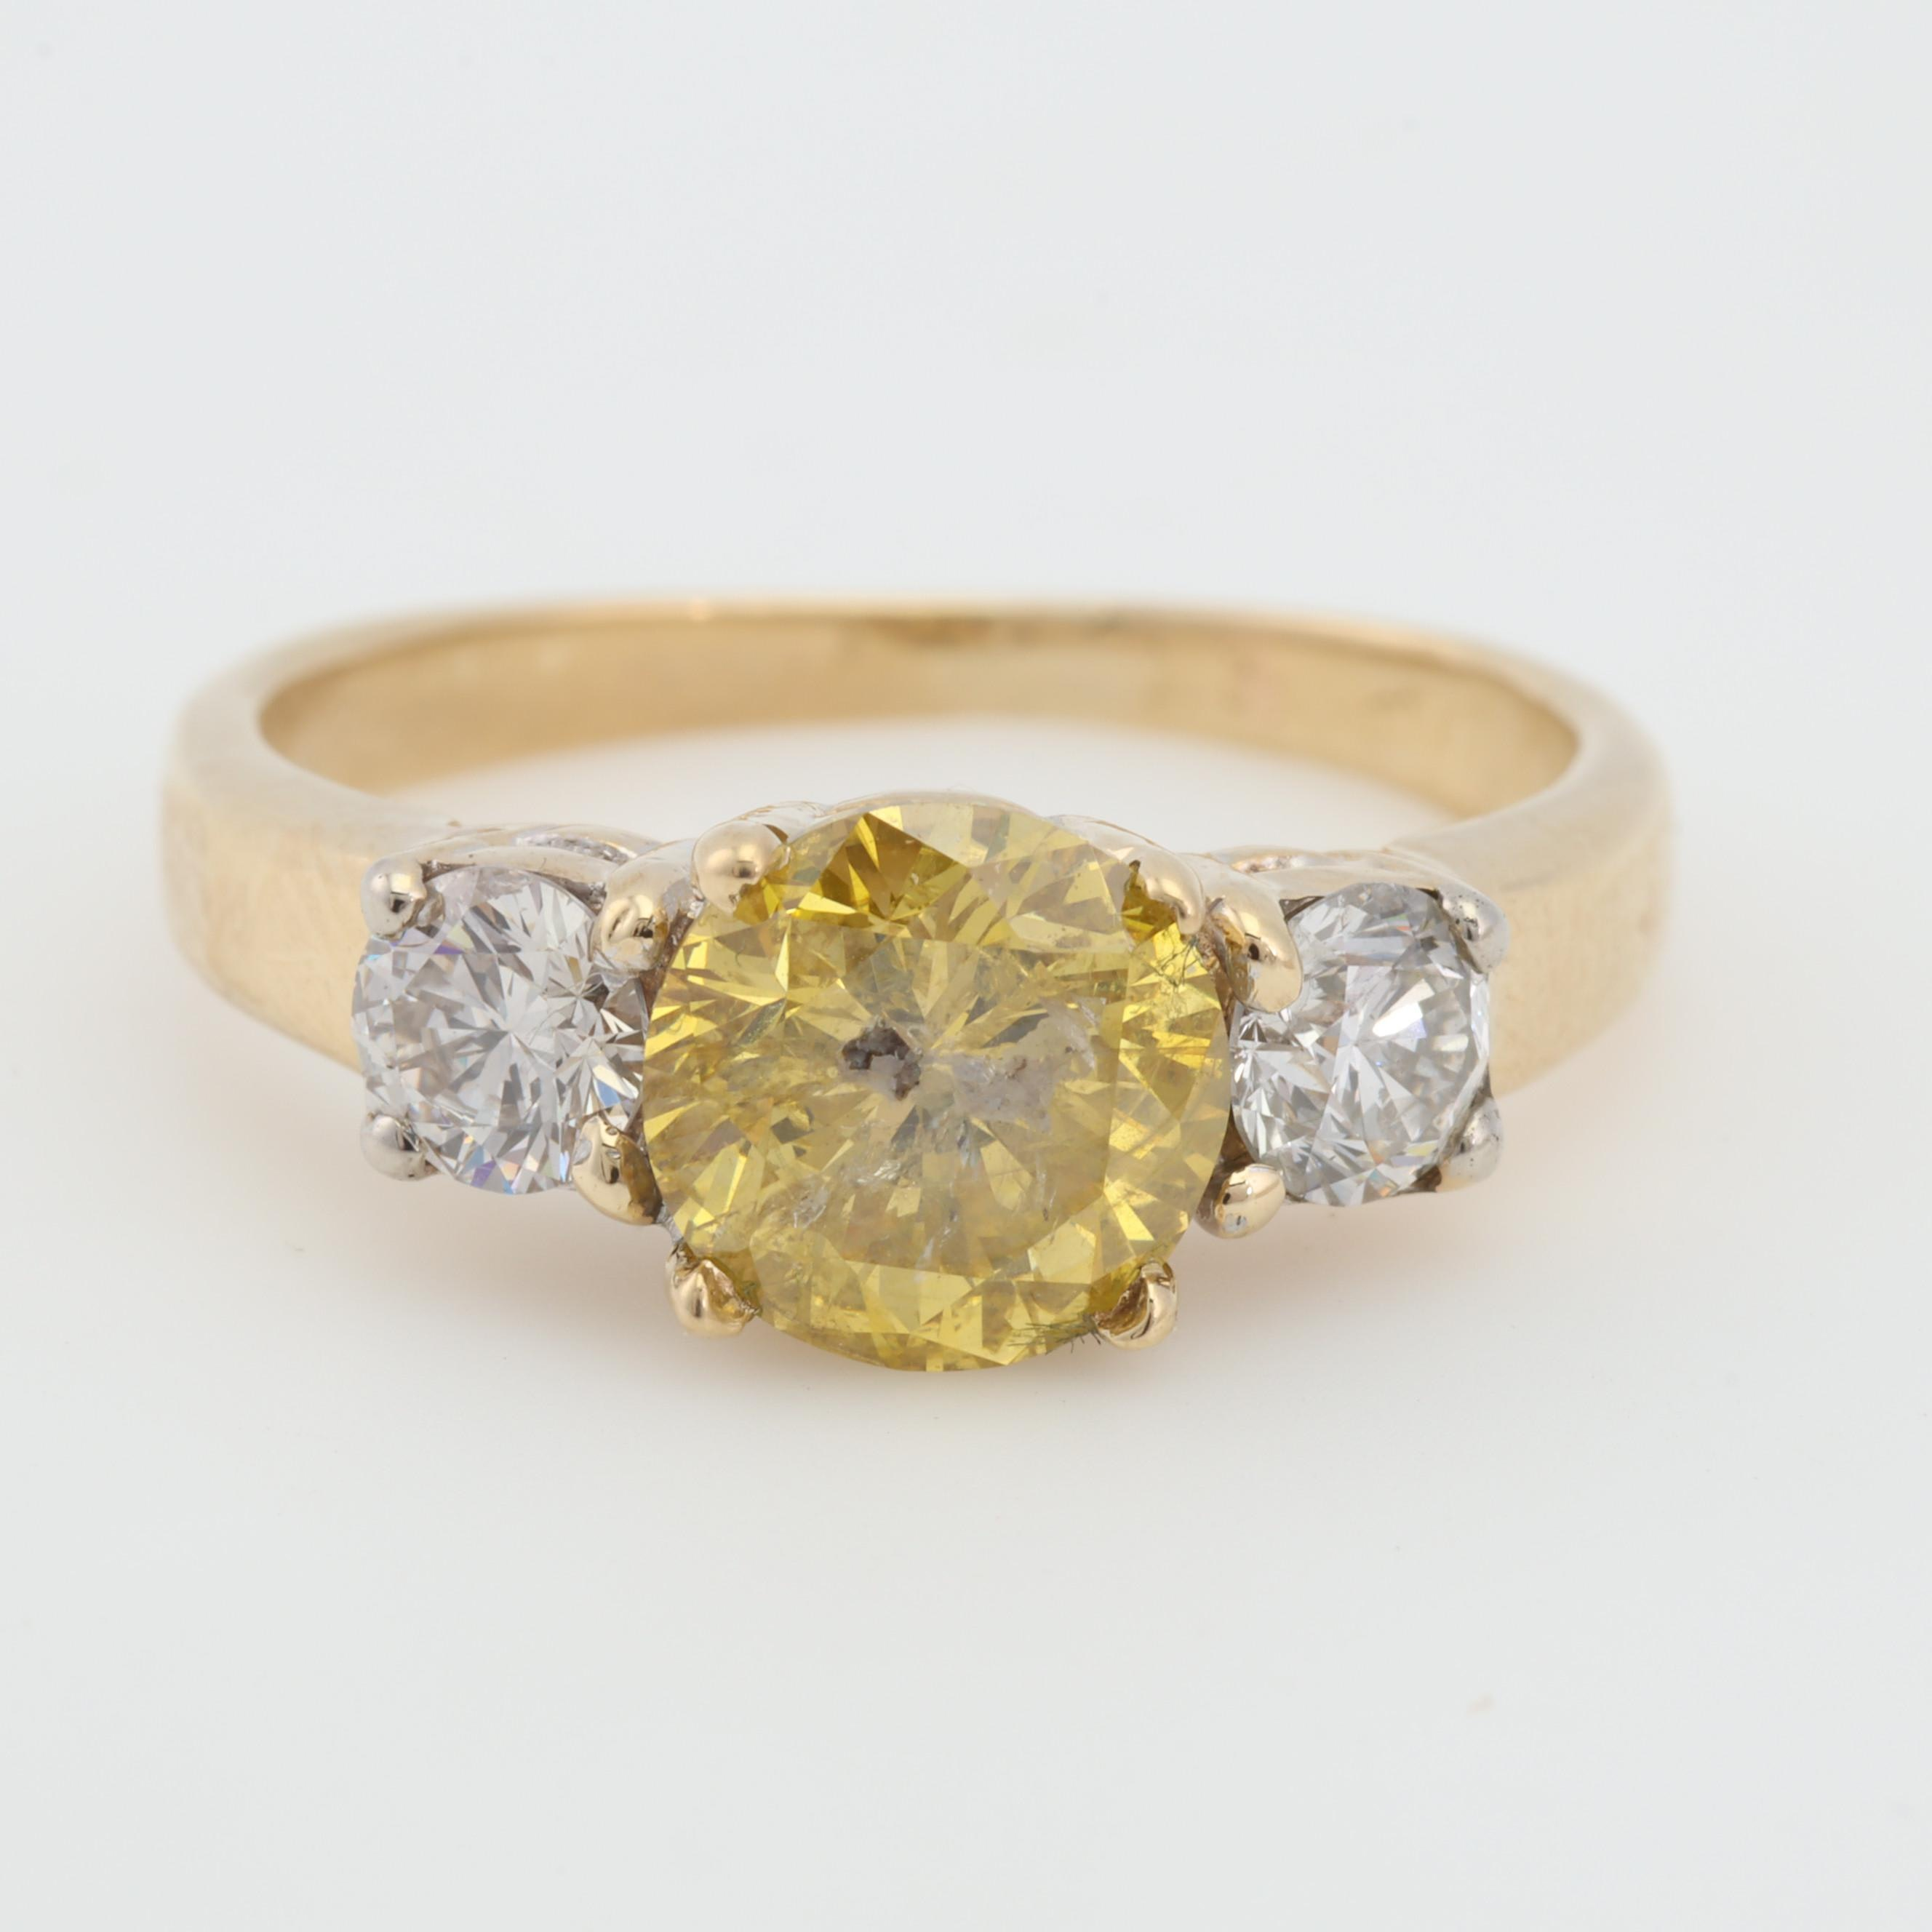 18K Yellow Gold Natural and Irradiated Yellow Diamond Ring, 1.55 CTW